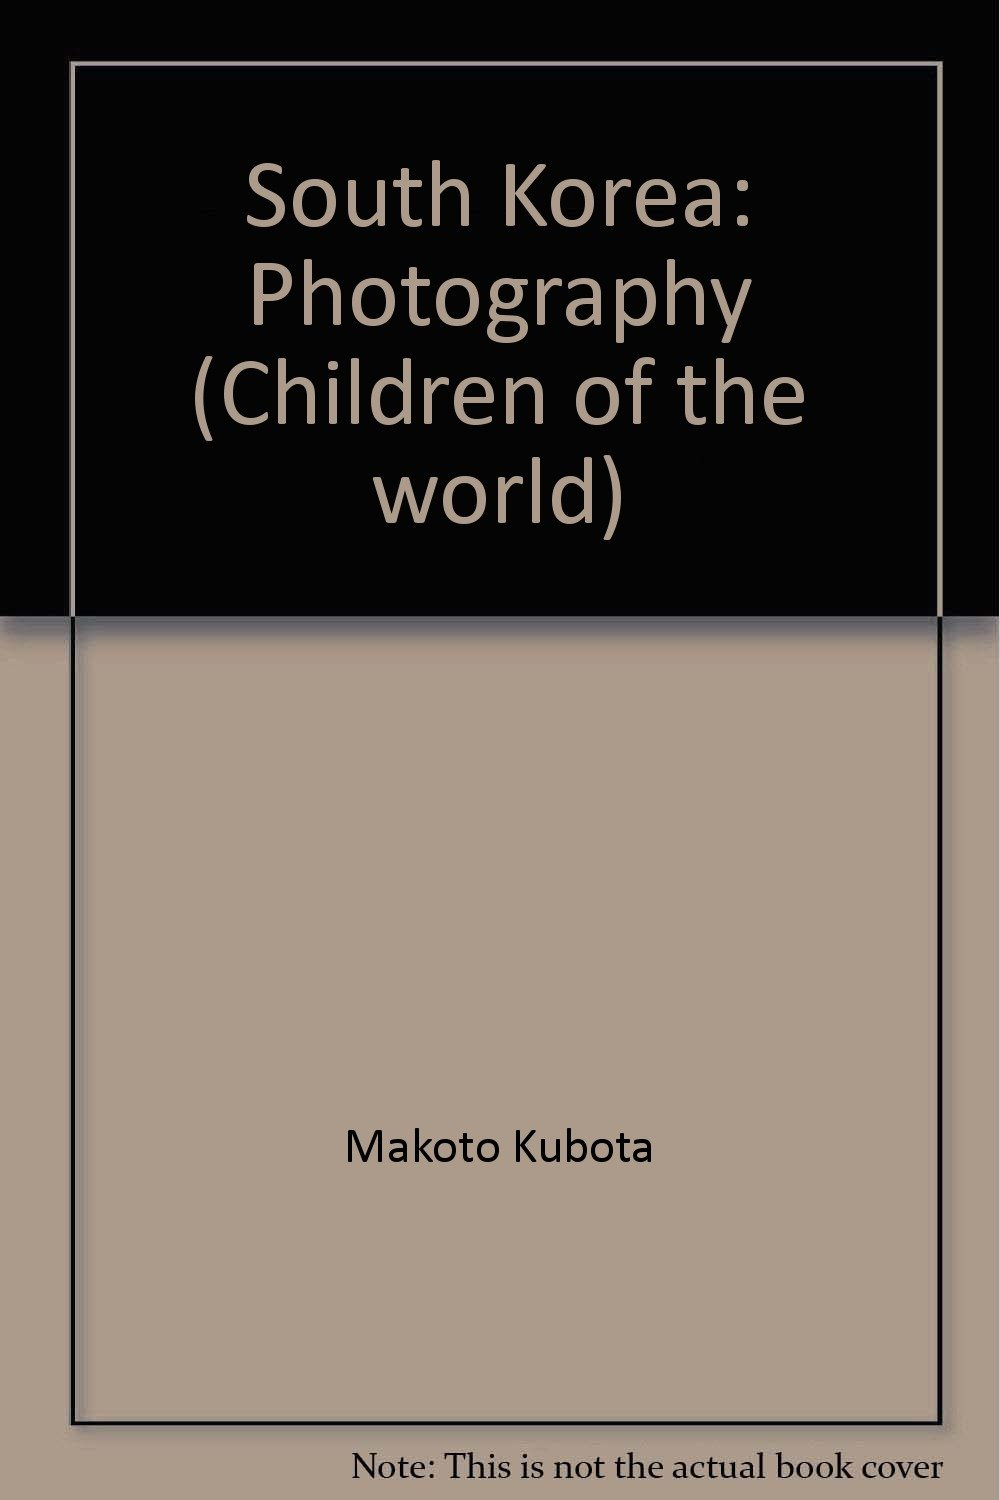 South Korea: Photography (Children of the world)